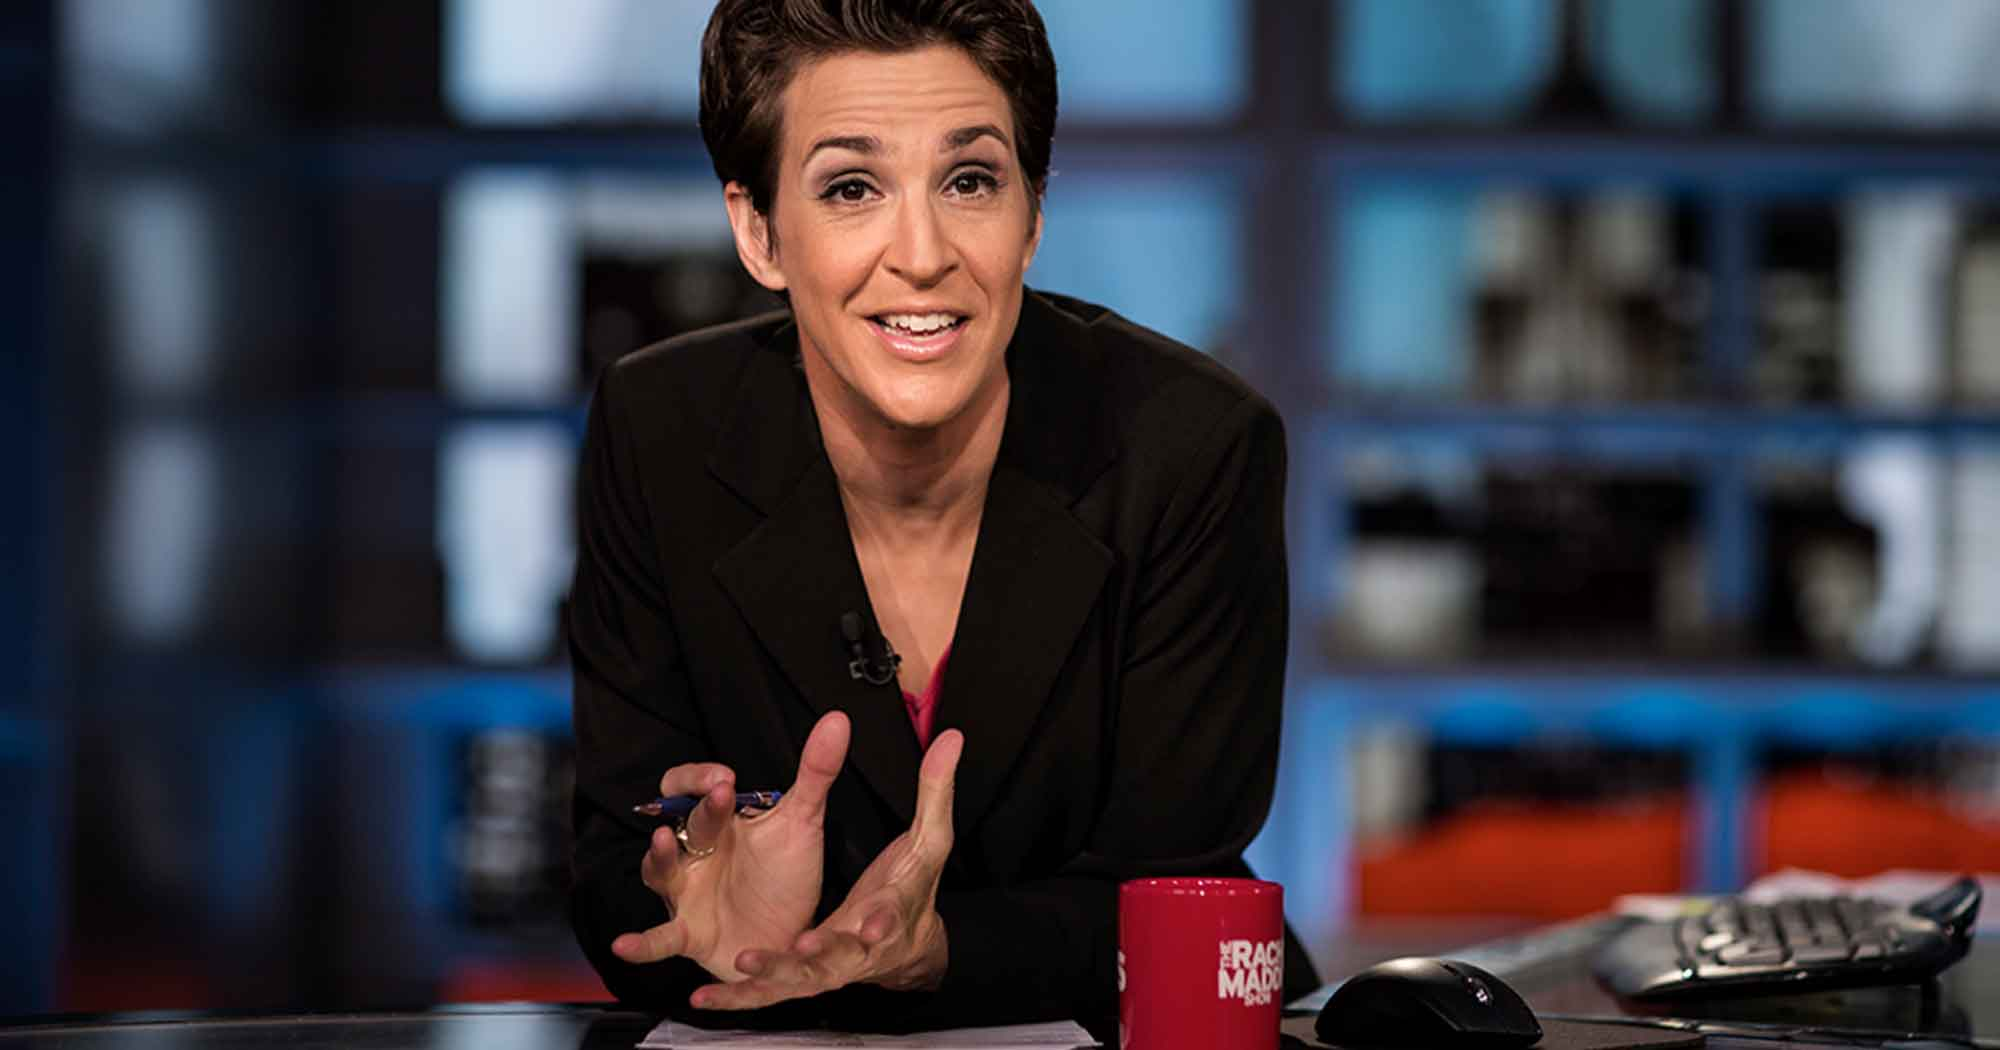 rachel maddow oxford thesis Maddow's mainstream appeal is all very counterintuitive: she is an out-and-proud lesbian and raging liberal who had an oxford political science doctorate, but little television experience, when.